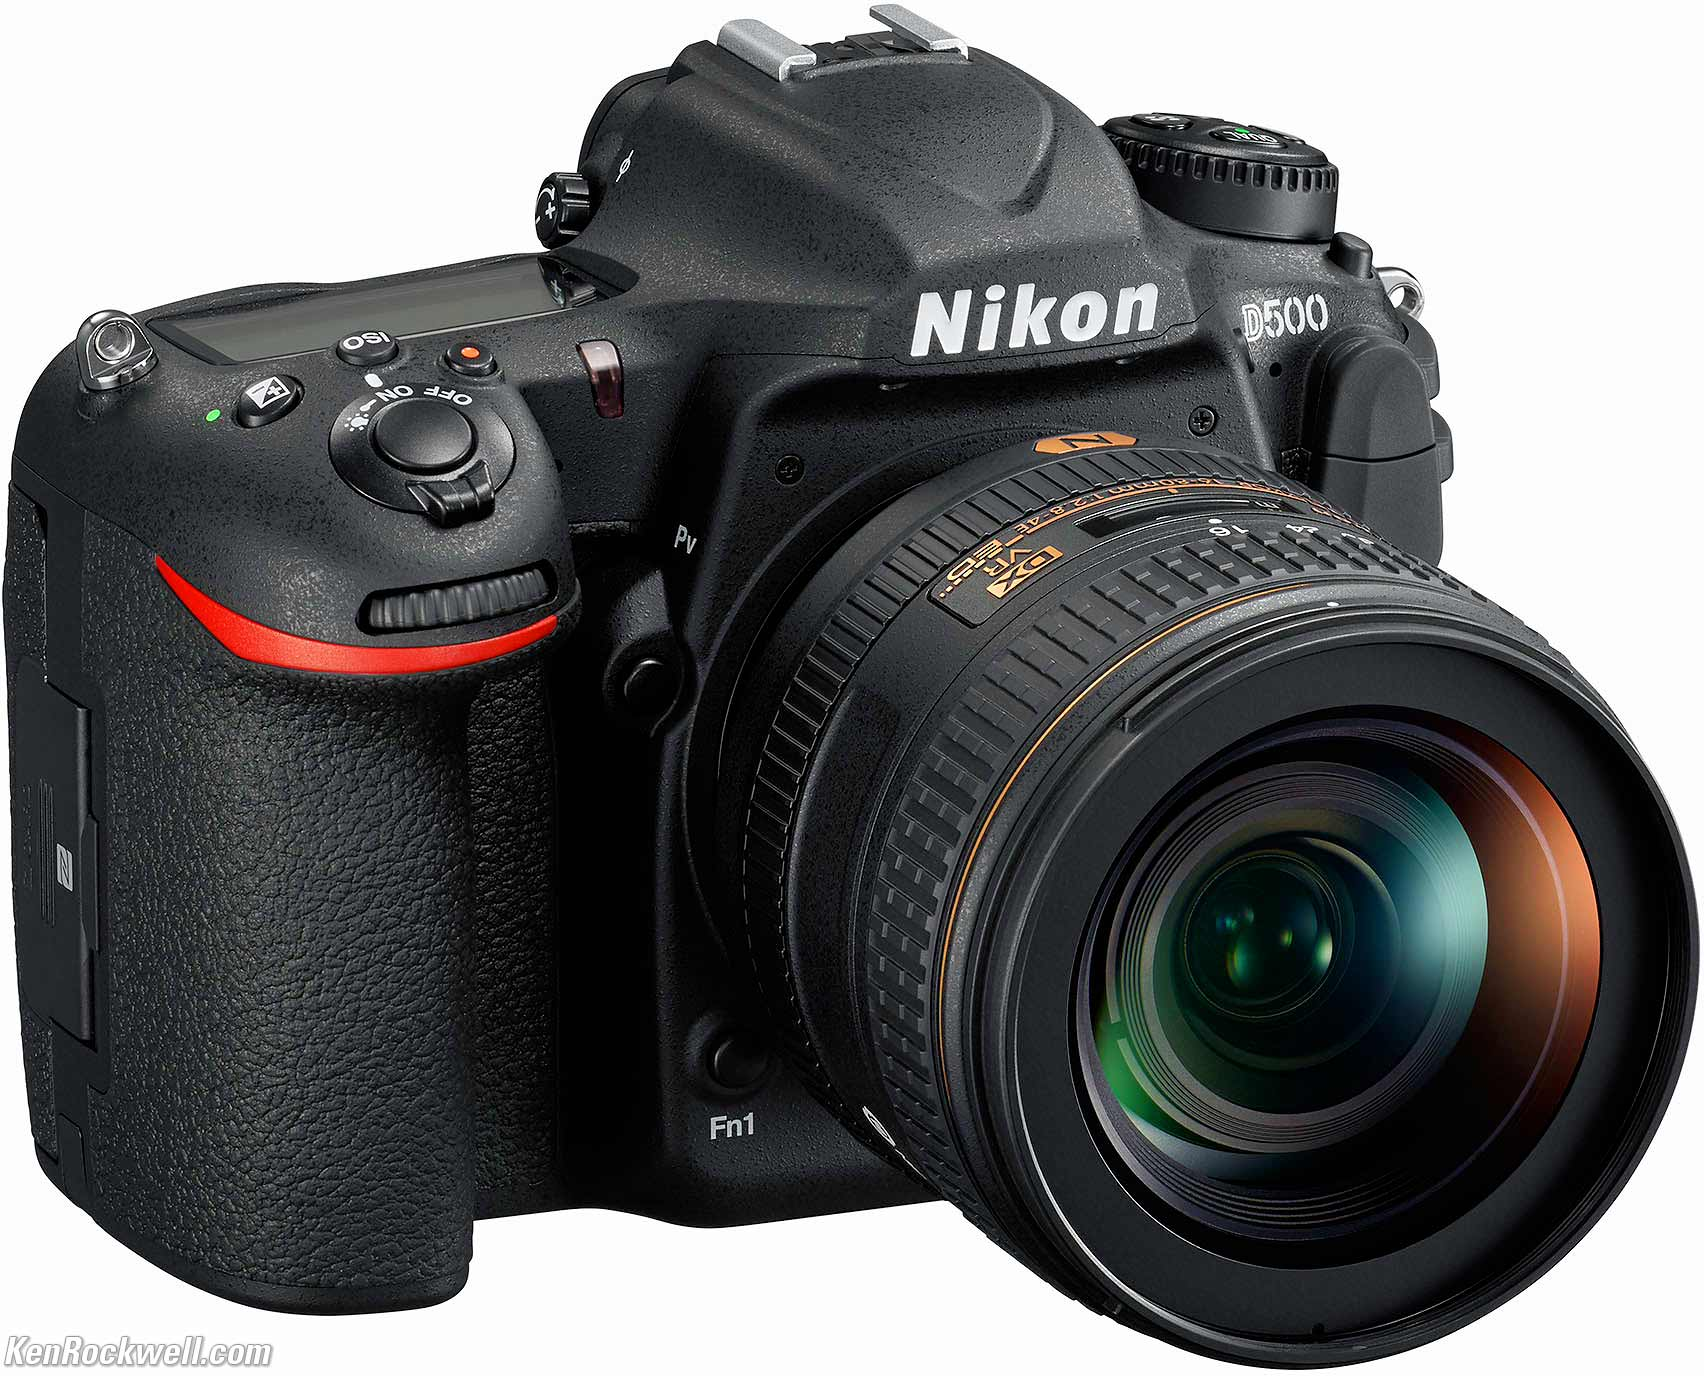 NIKON D500 Review, Price, Model, Picture, Quality, Battery, India